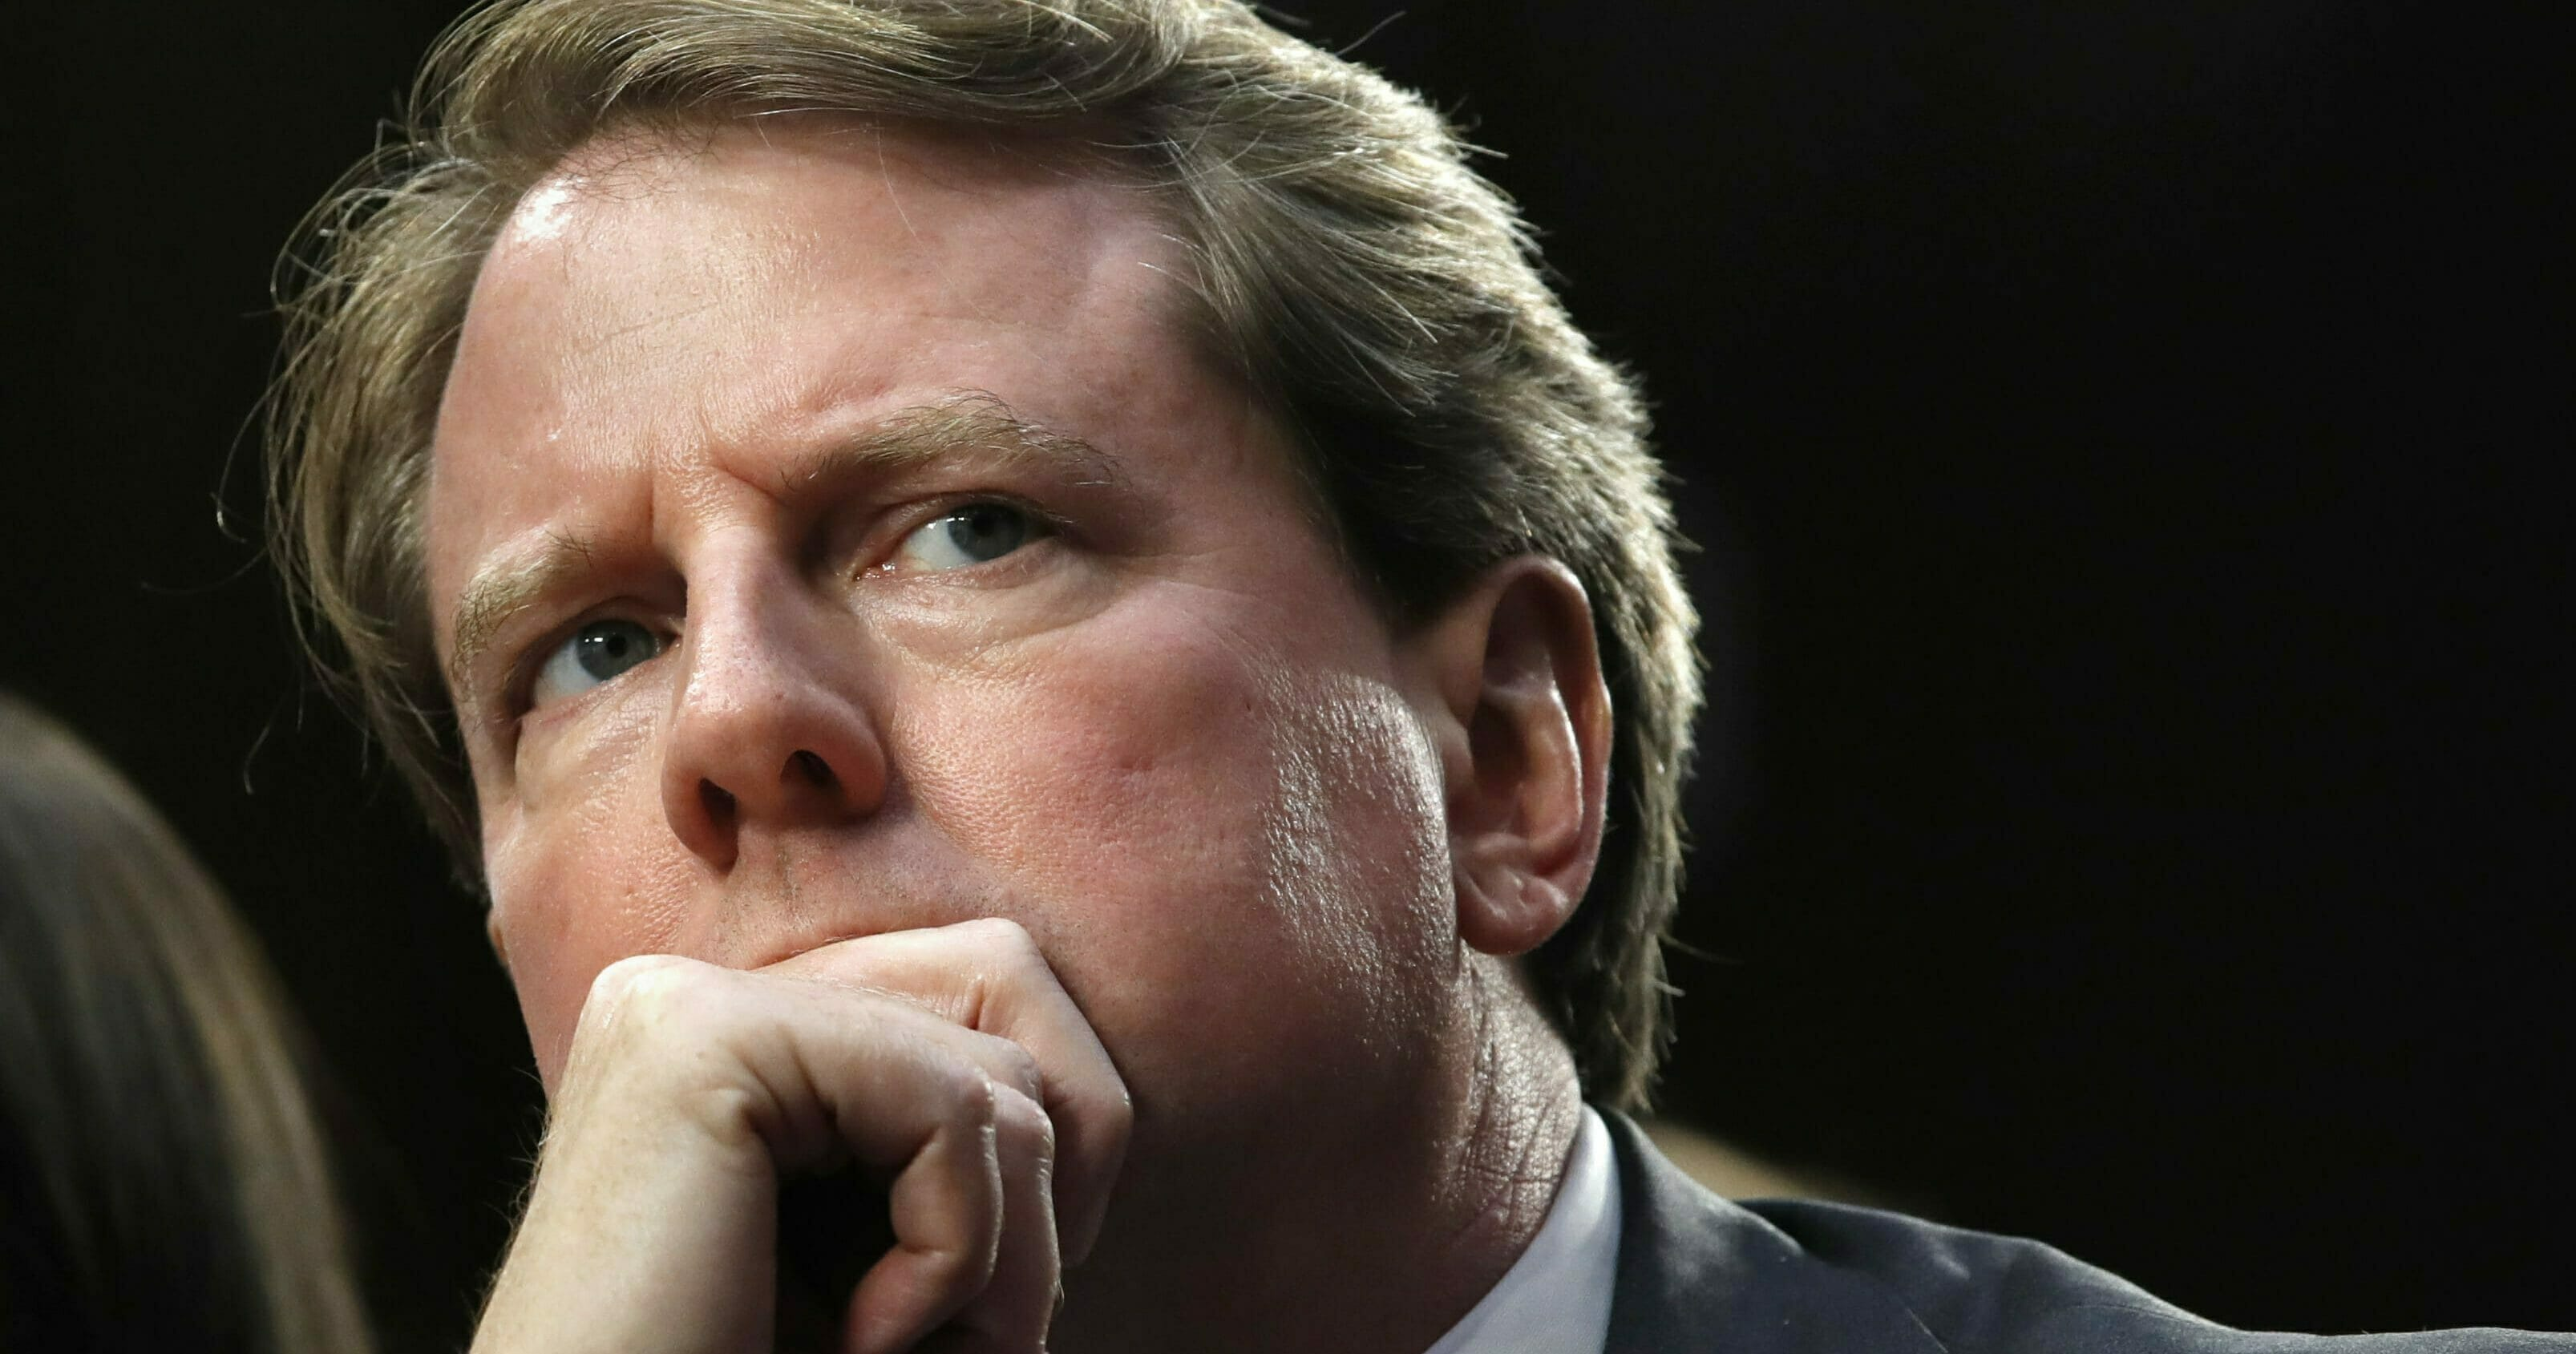 Don McGahn listens as he attends a confirmation hearing on Capitol Hill in Washington, D.C., on Sept. 4, 2018.